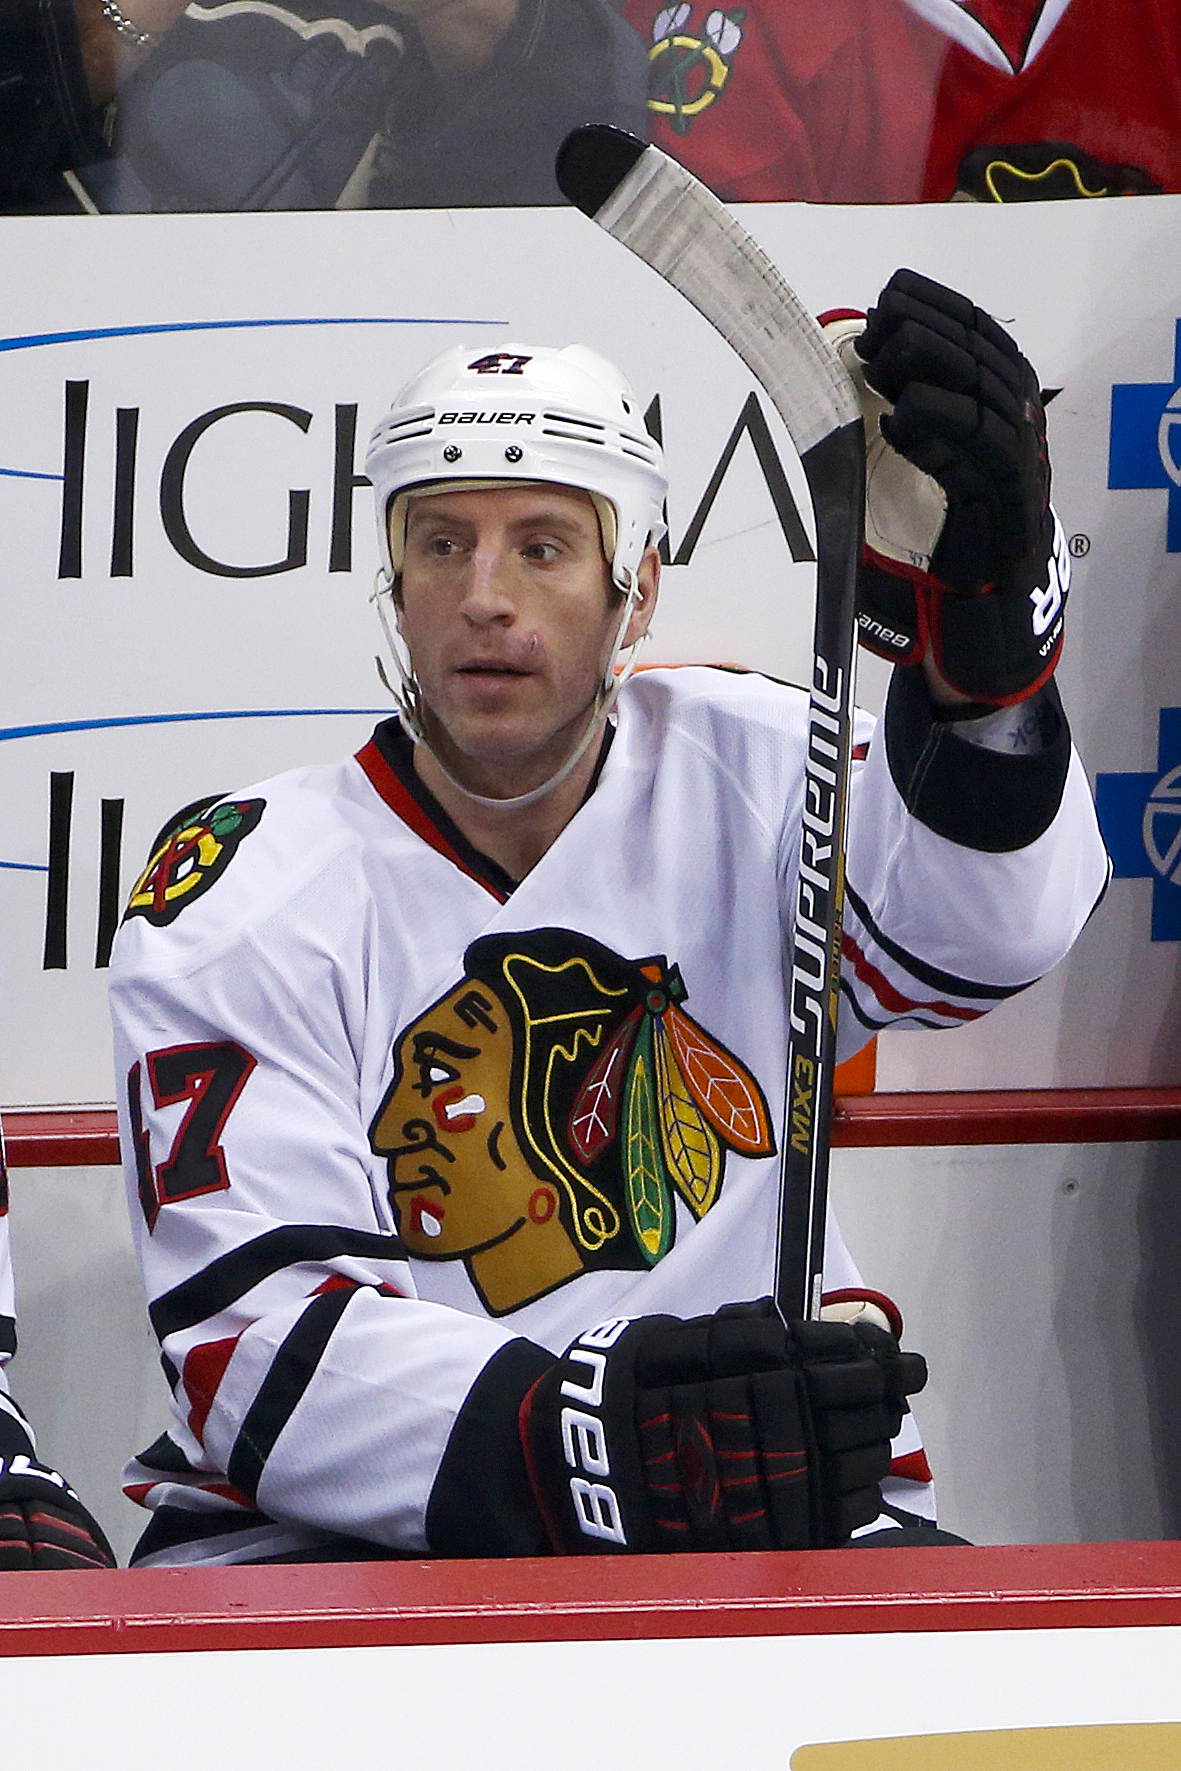 Chicago Blackhawks' Rob Scuderi (47) sits on the bench during an NHL hockey game against the Pittsburgh Penguins in Pittsburgh, Tuesday, Jan. 5, 2016. (AP Photo/Gene J. Puskar)